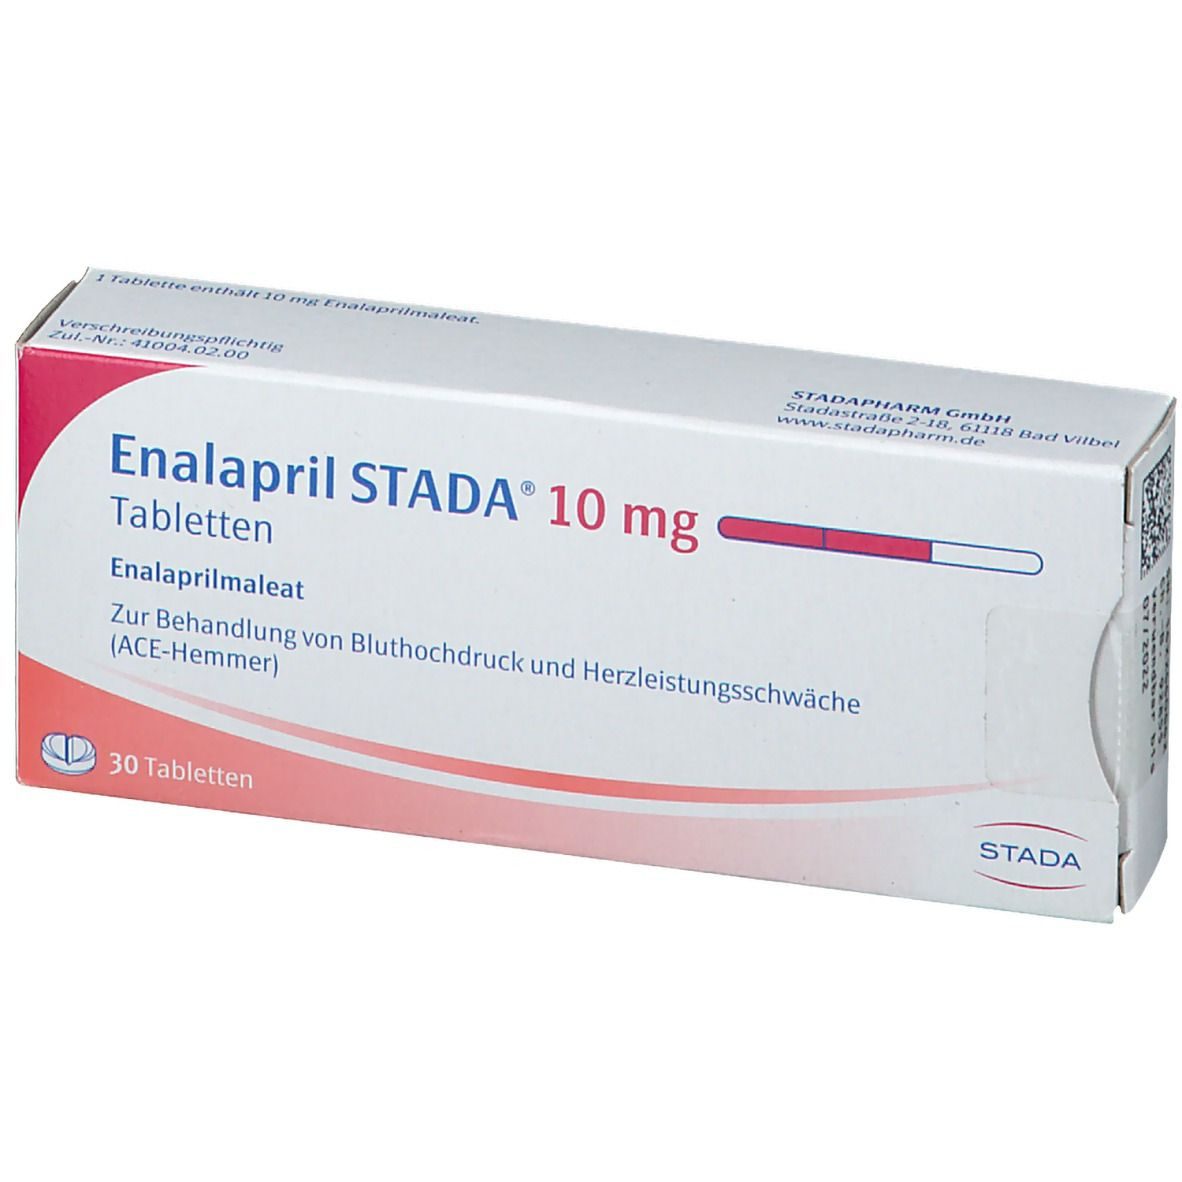 Enalapril STADA® 10 mg Tabletten